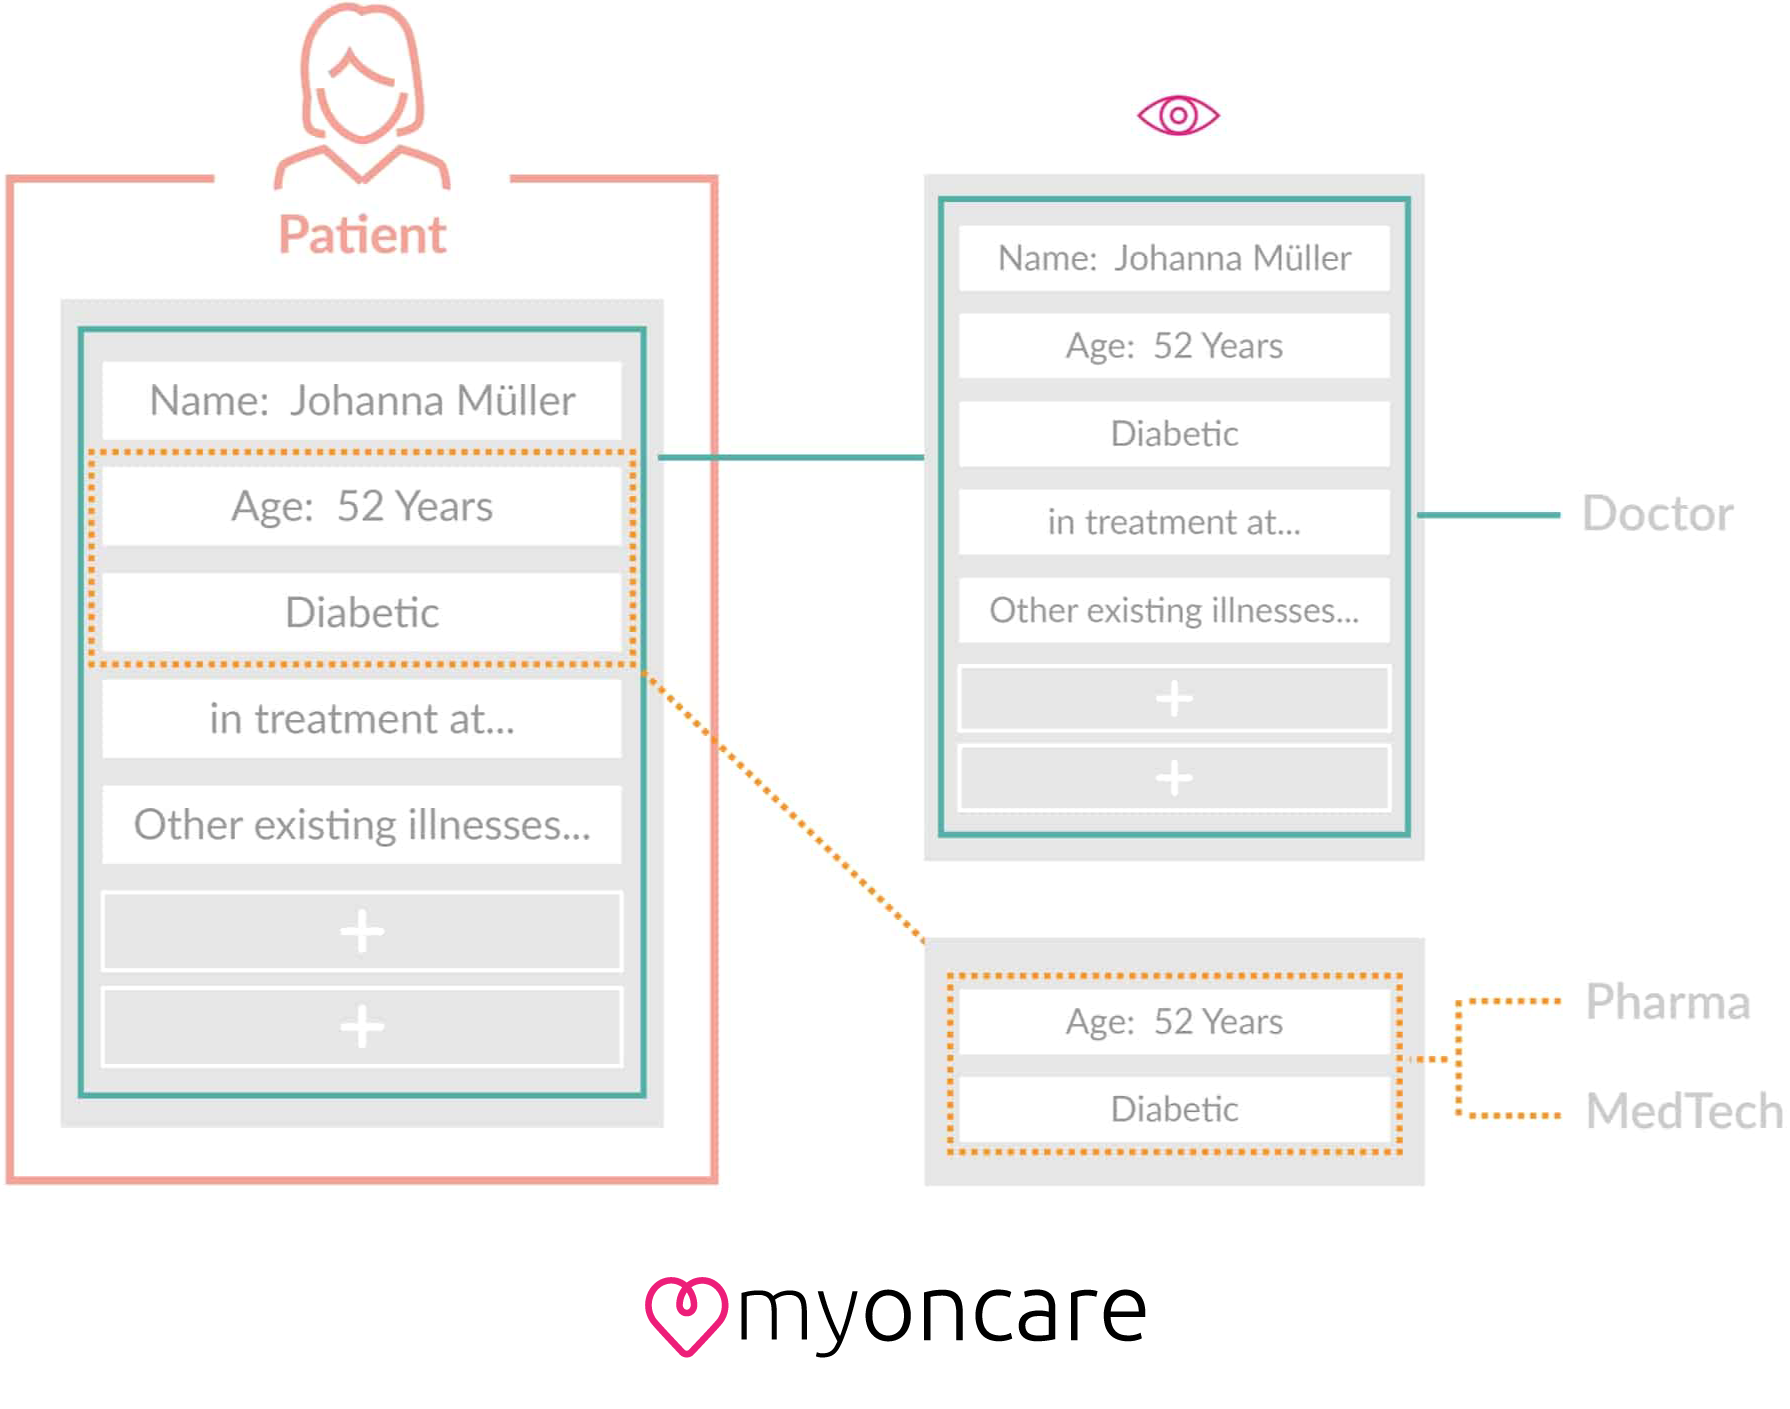 A chart showing that doctors receive all relevant data while MedTech and Pharma only receive anonymised data.